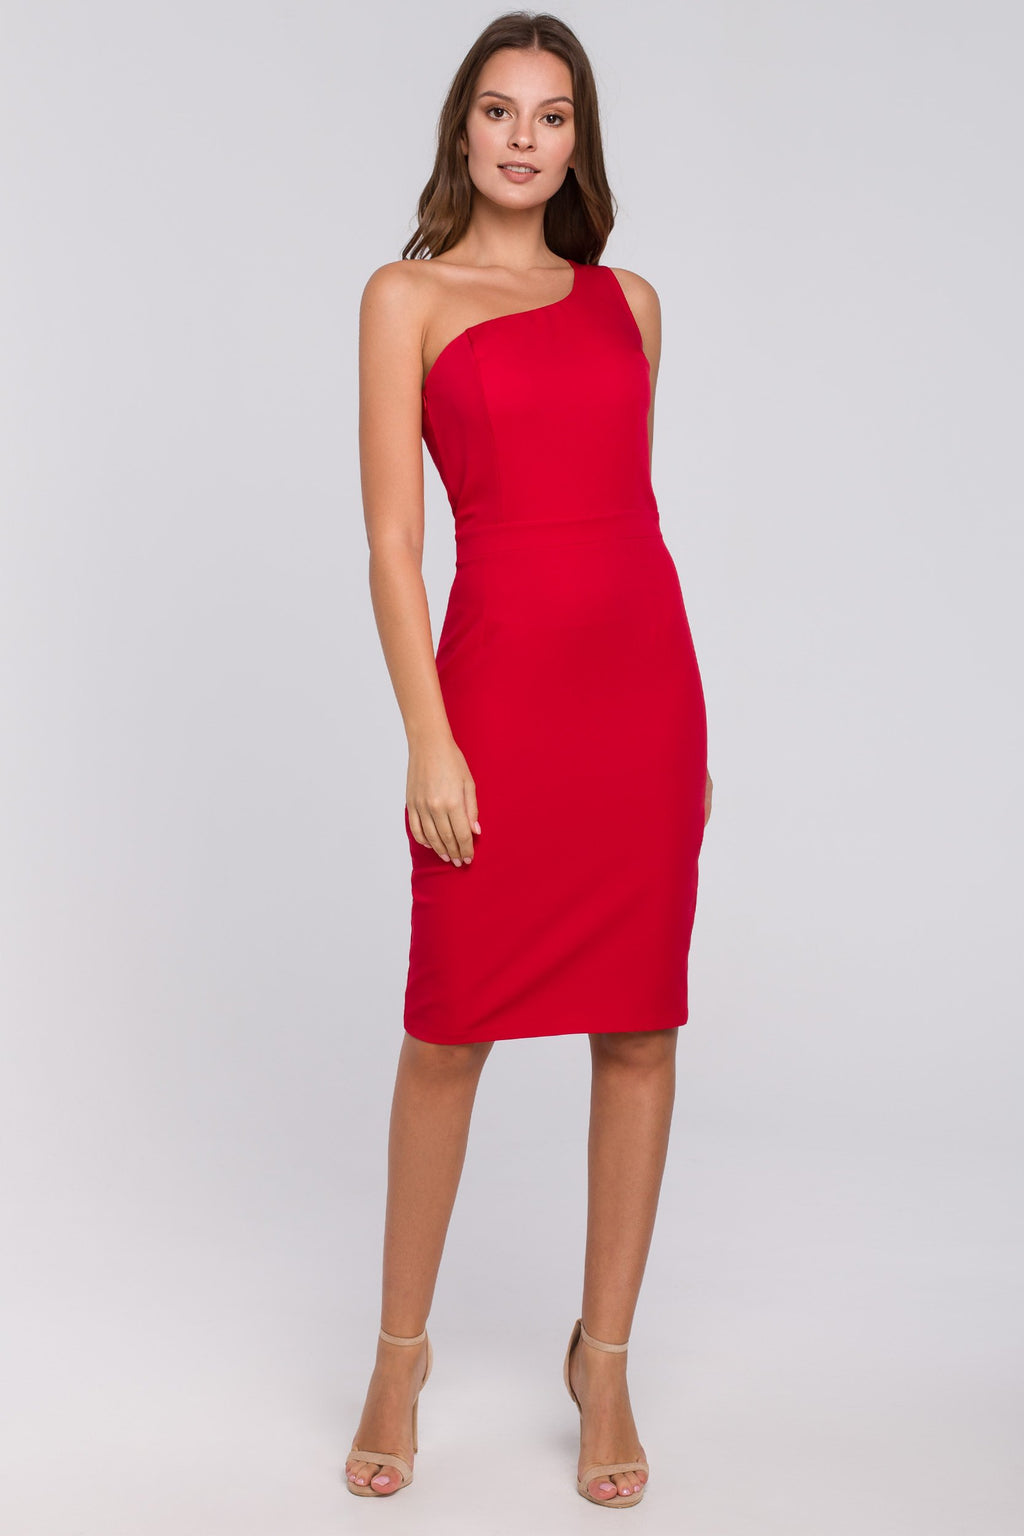 Red Fitted One Shoulder Dress - So Chic Boutique